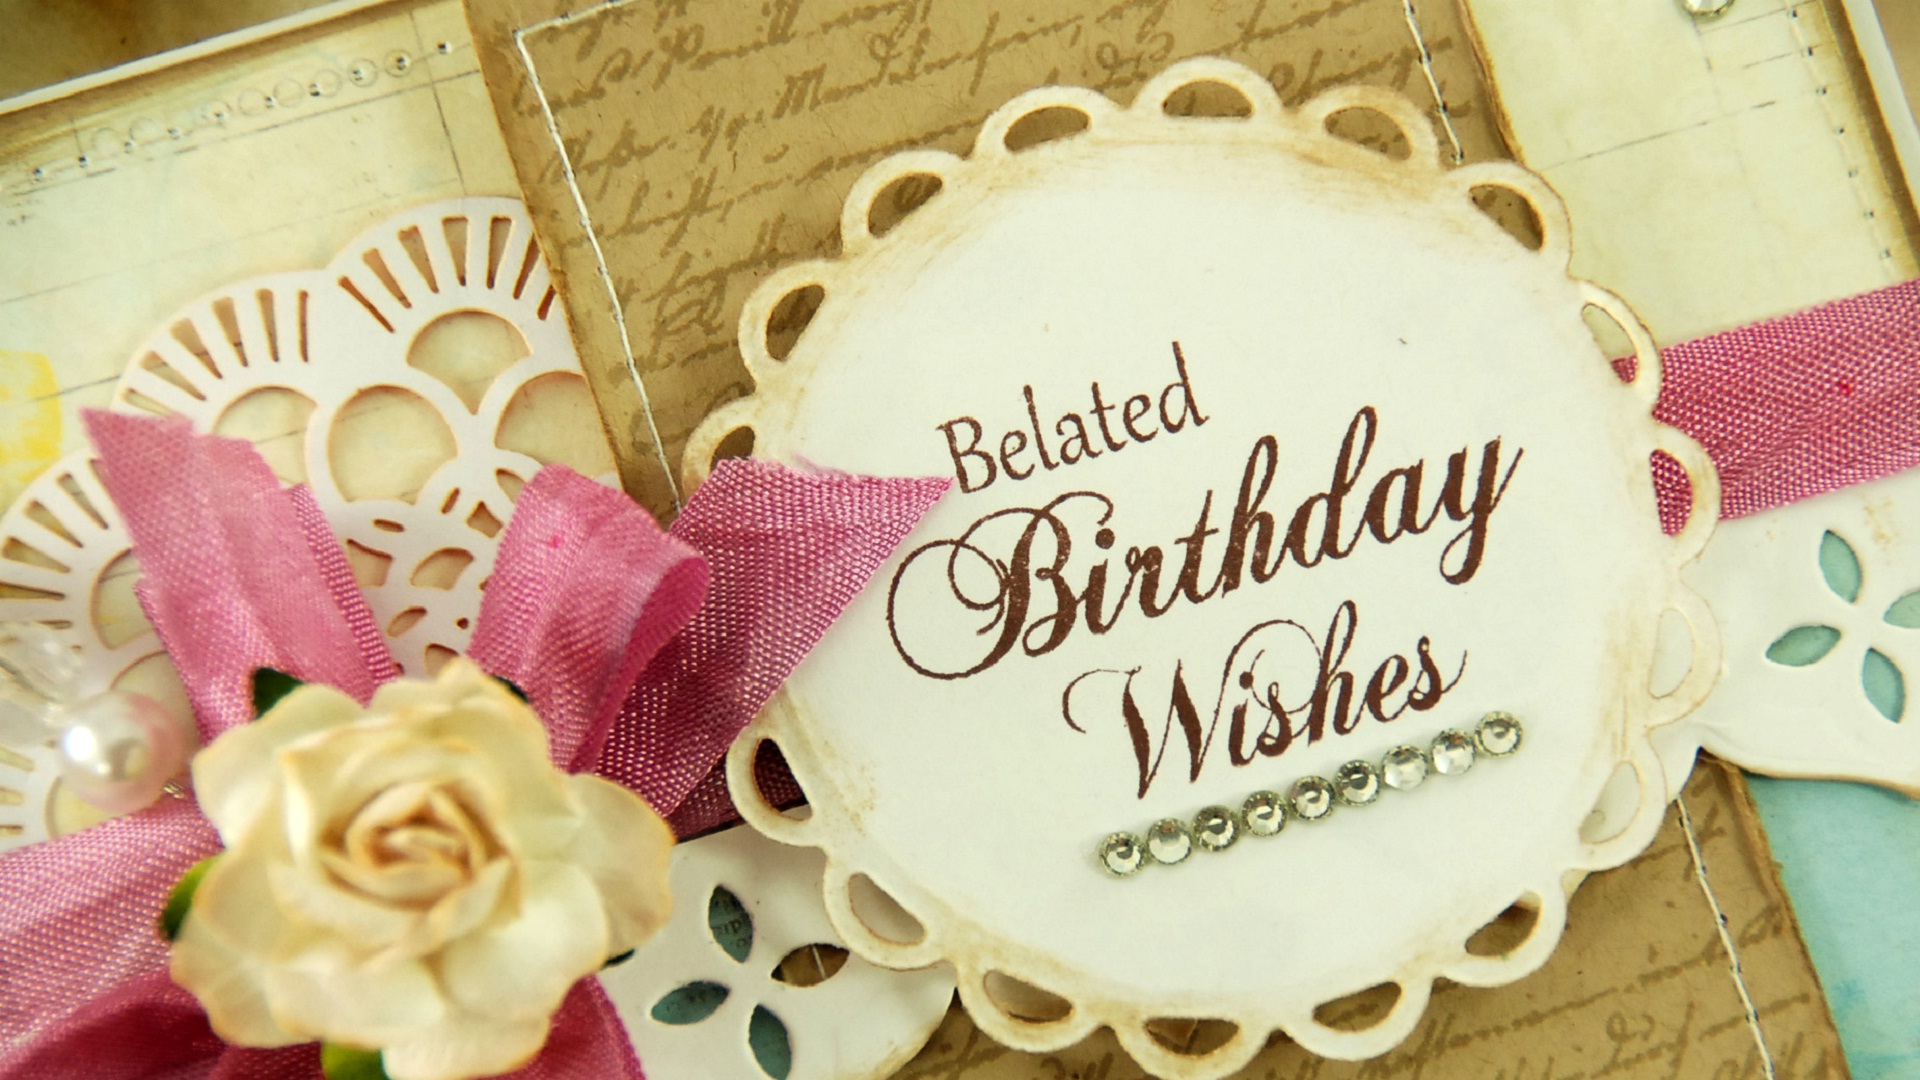 birthday wishes background wallpaper ; Birthday-wishes-marvelous-gift-and-good-desires